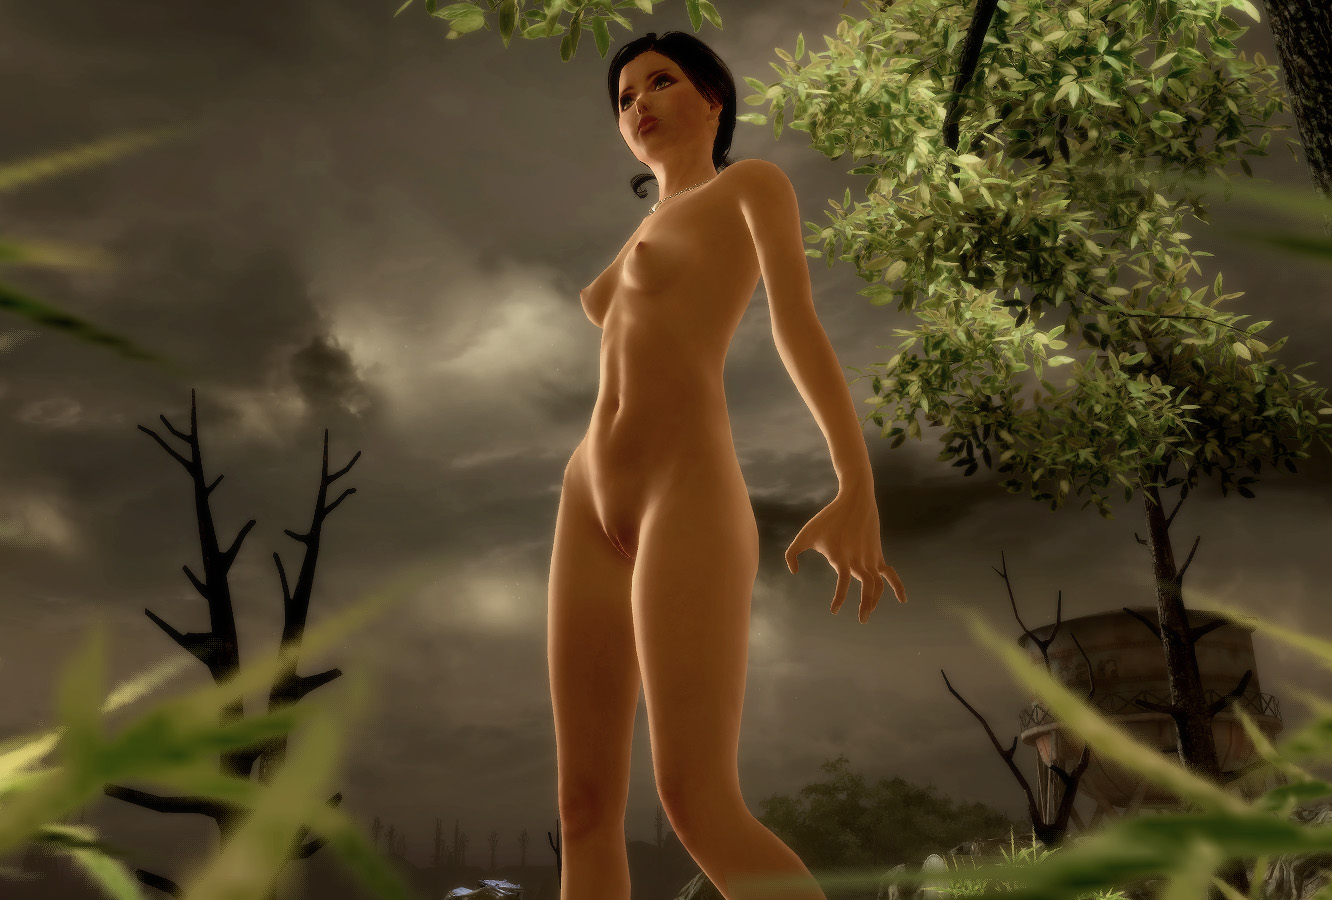 How to make girls naked on fallout cartoon photo